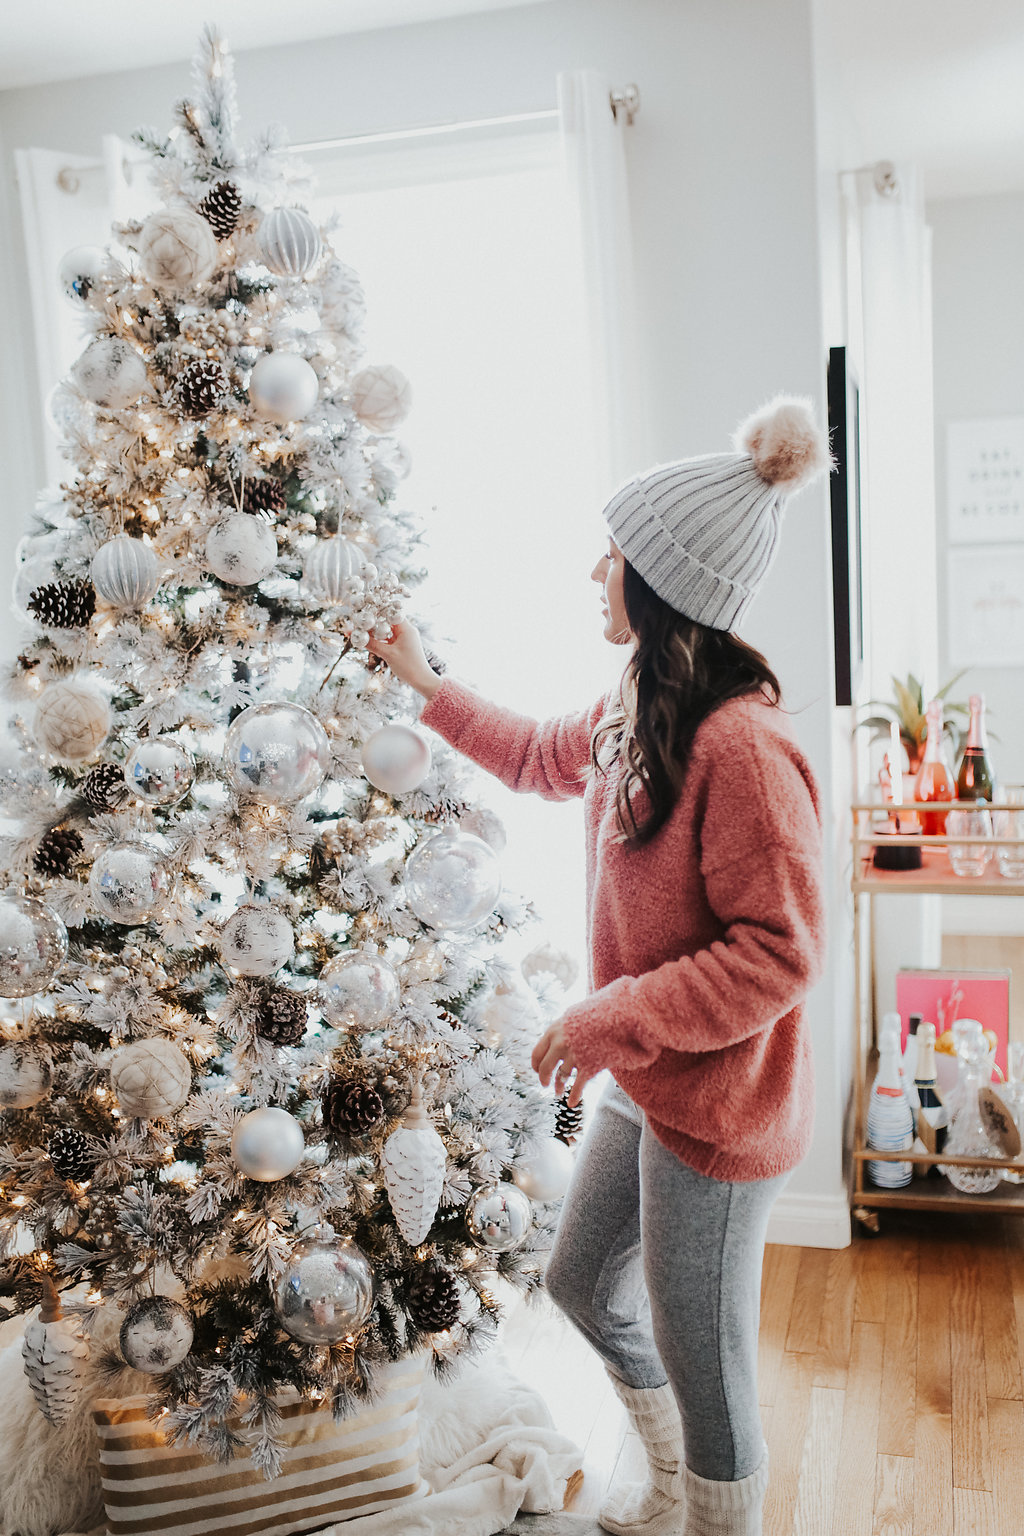 Decorating Our First Christmas Tree - Over My Styled Body